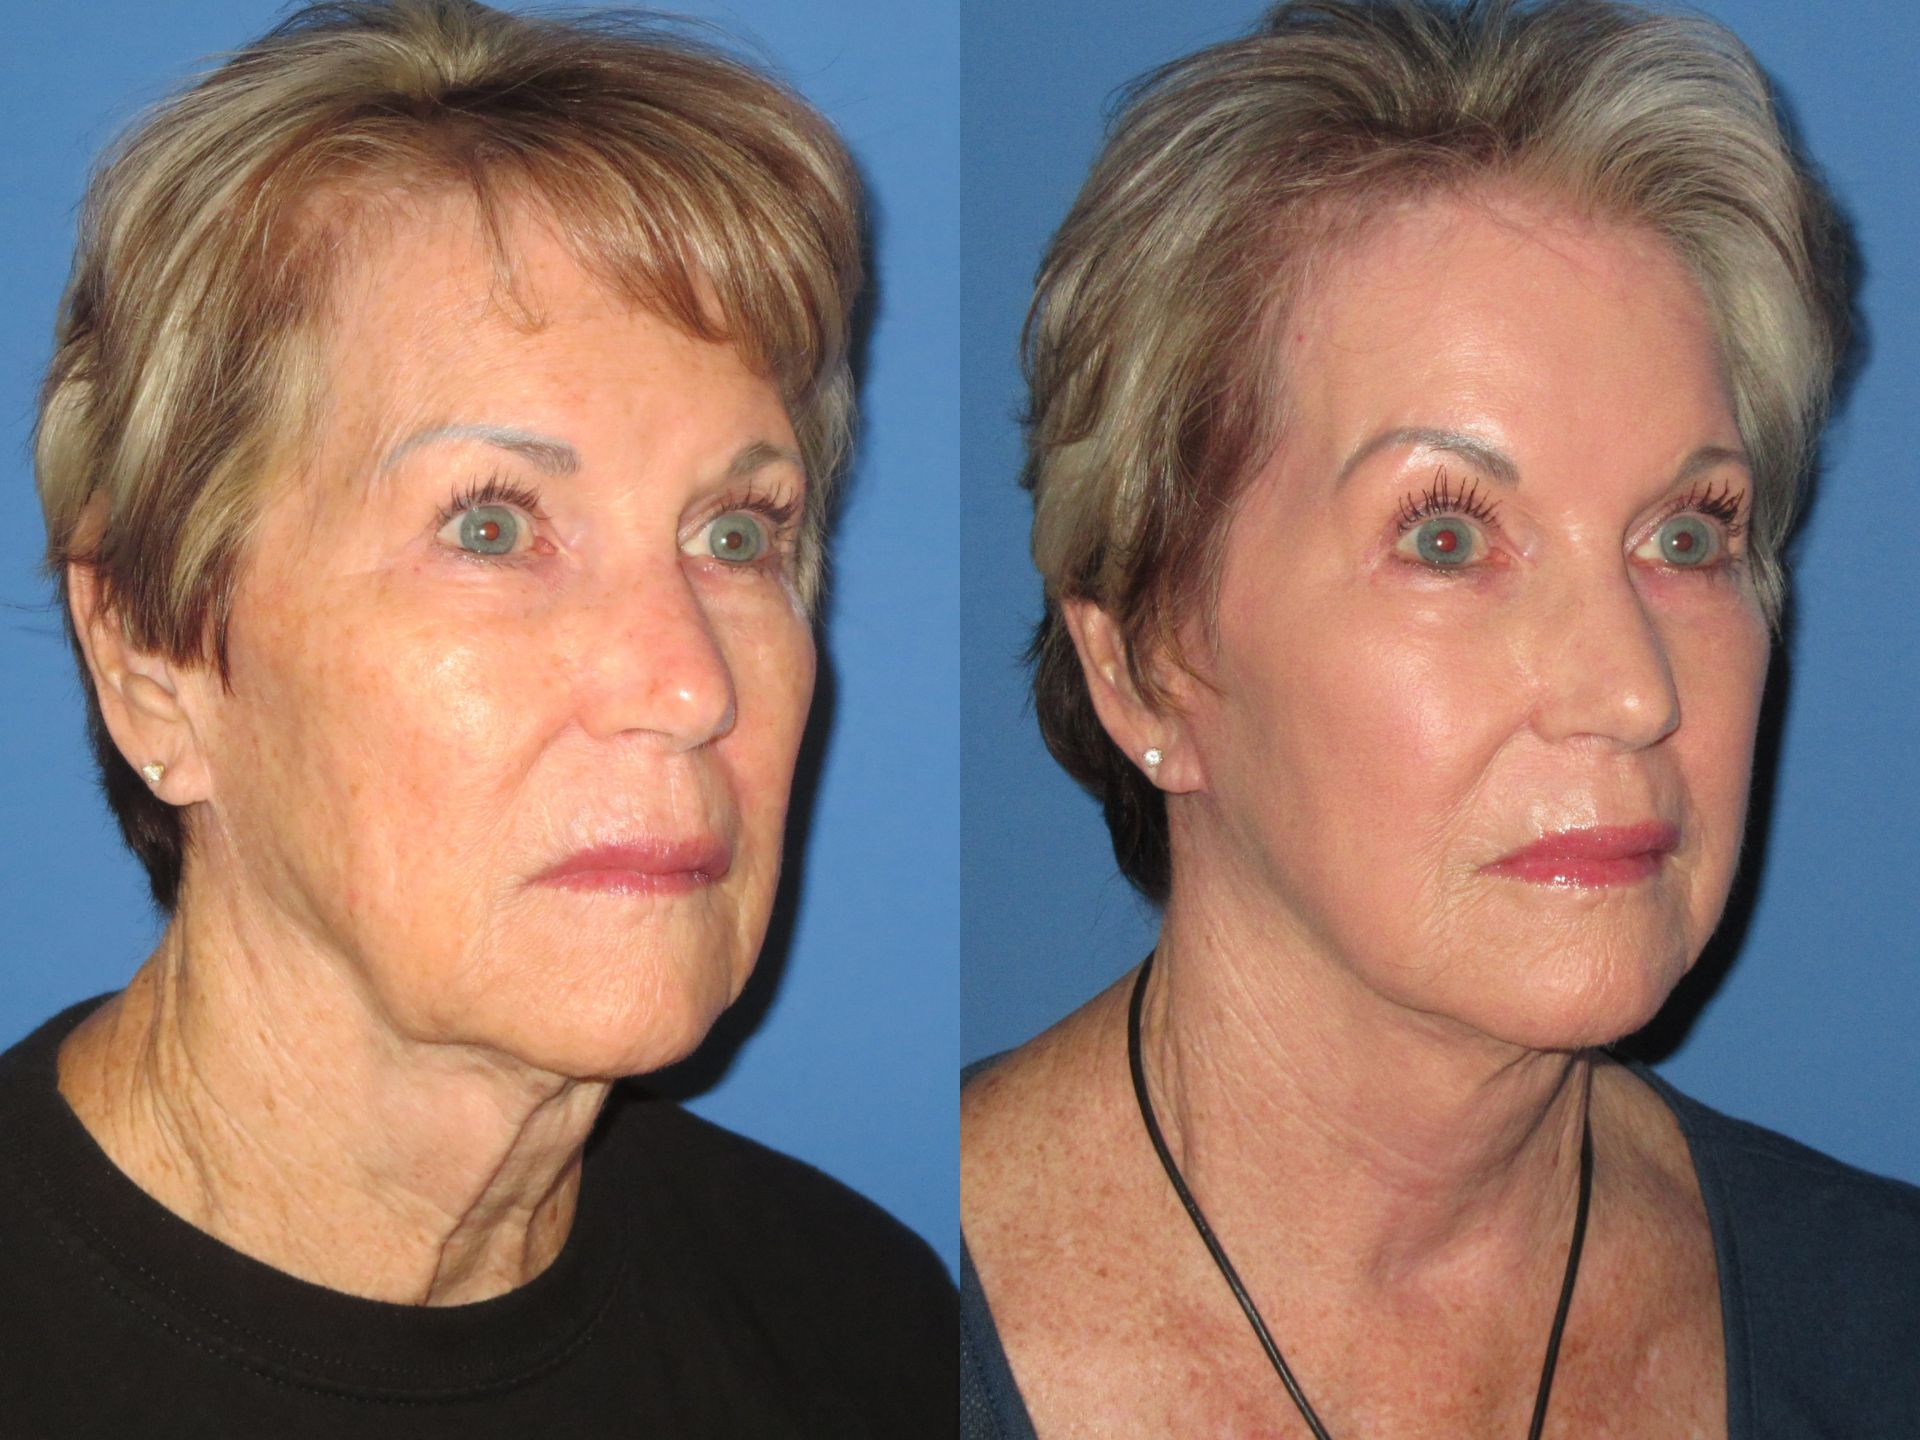 Mini Facelift Case 5 16 18 3 4 Before After 1